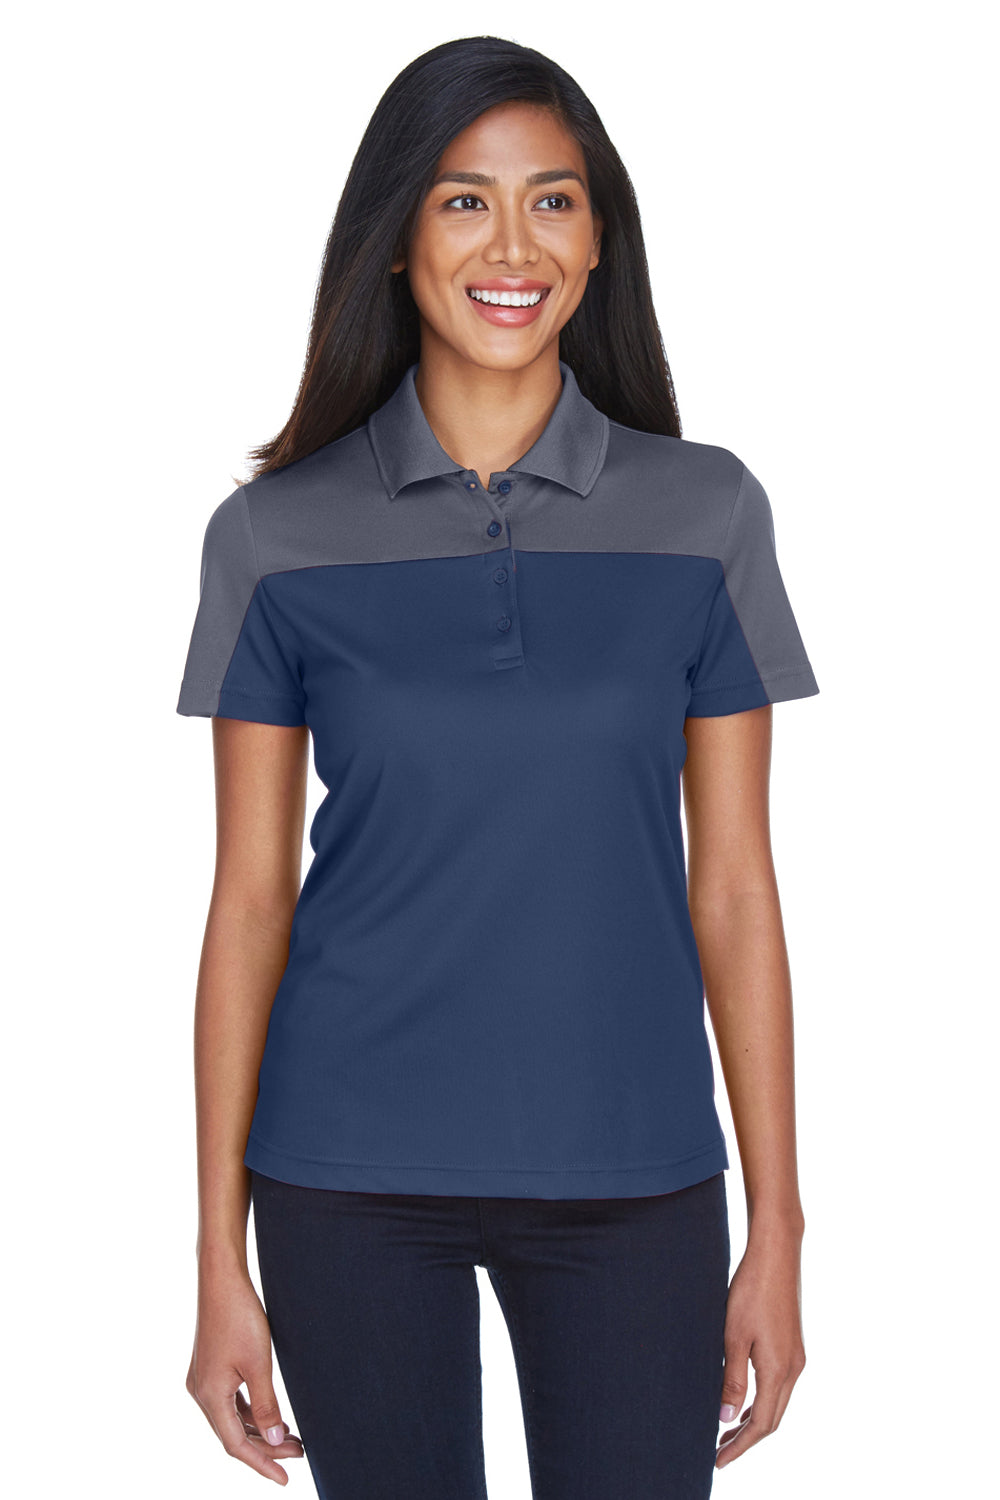 Core 365 CE101W Womens Balance Performance Moisture Wicking Short Sleeve Polo Shirt Navy Blue/Grey Front